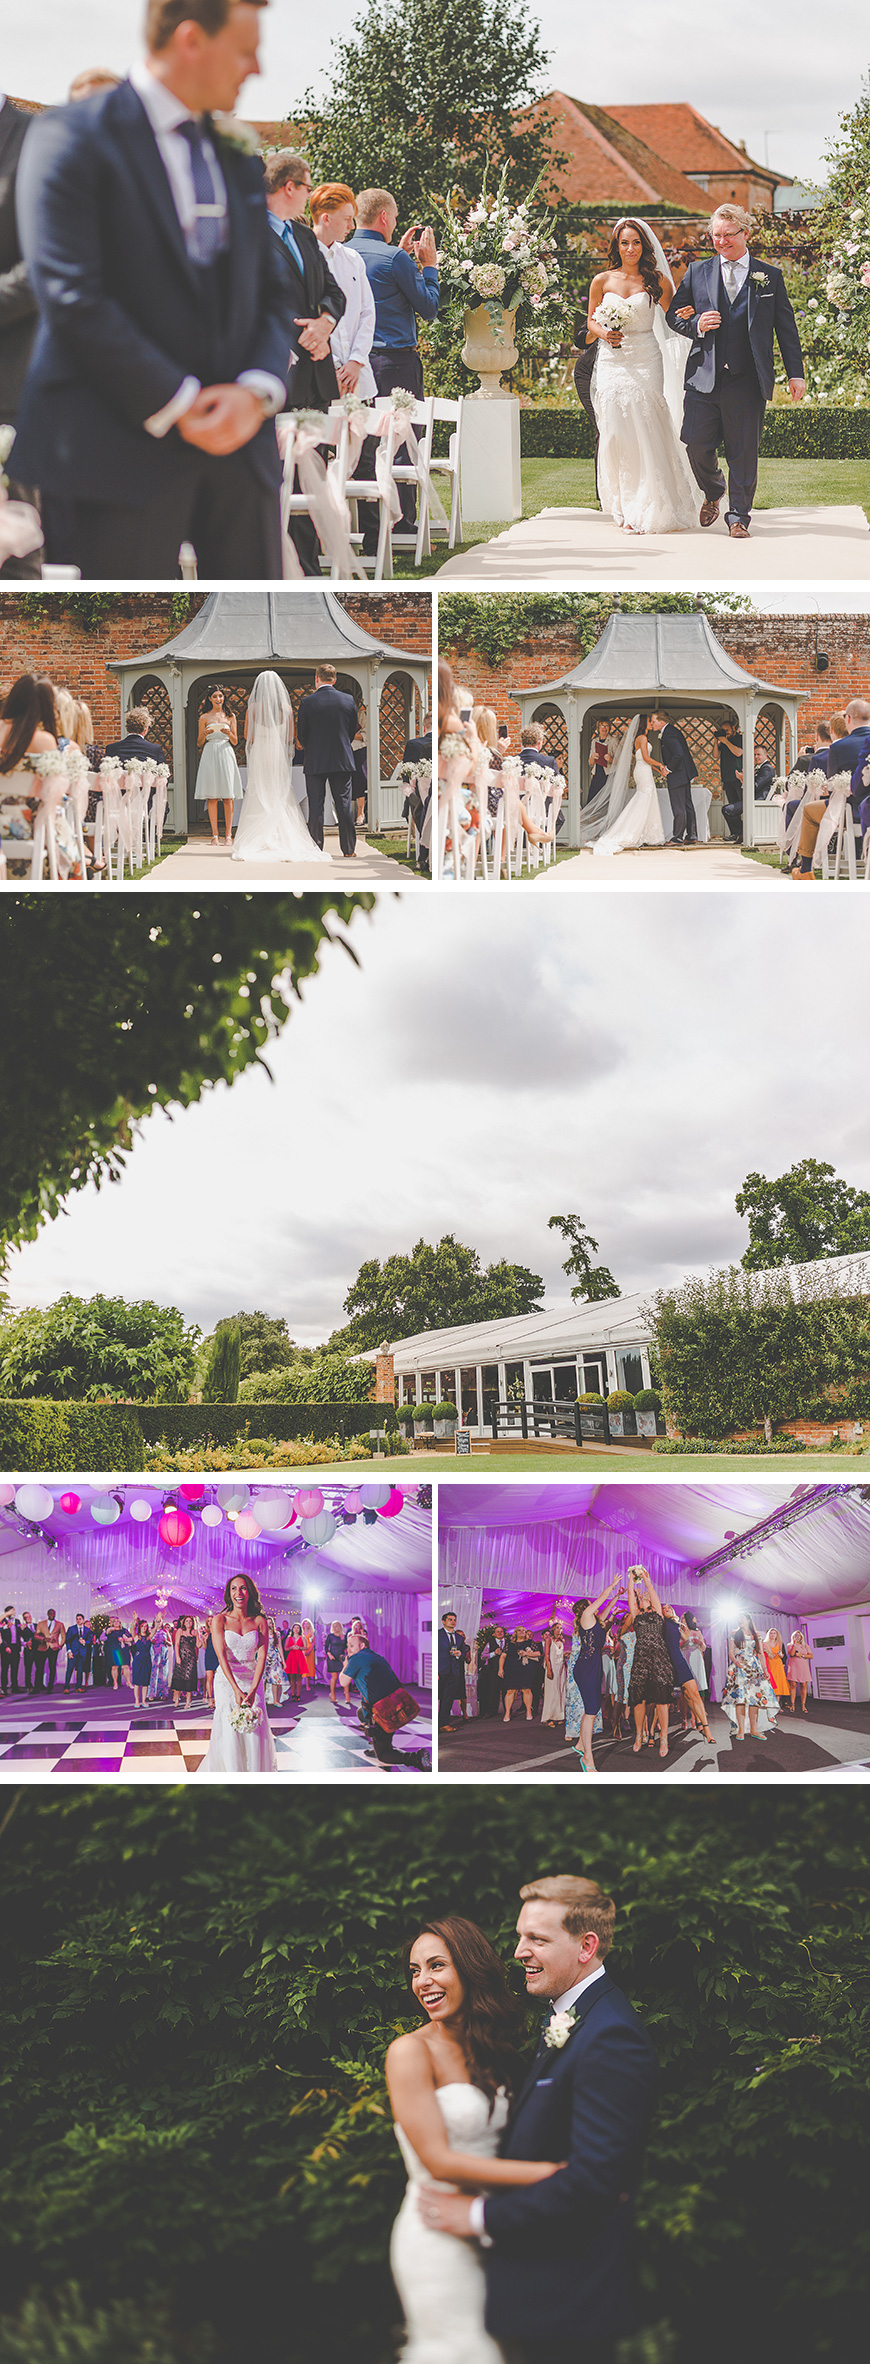 Zillia and Martyn's Pastel Summer Wedding At Braxted Park - The best bits | CHWV